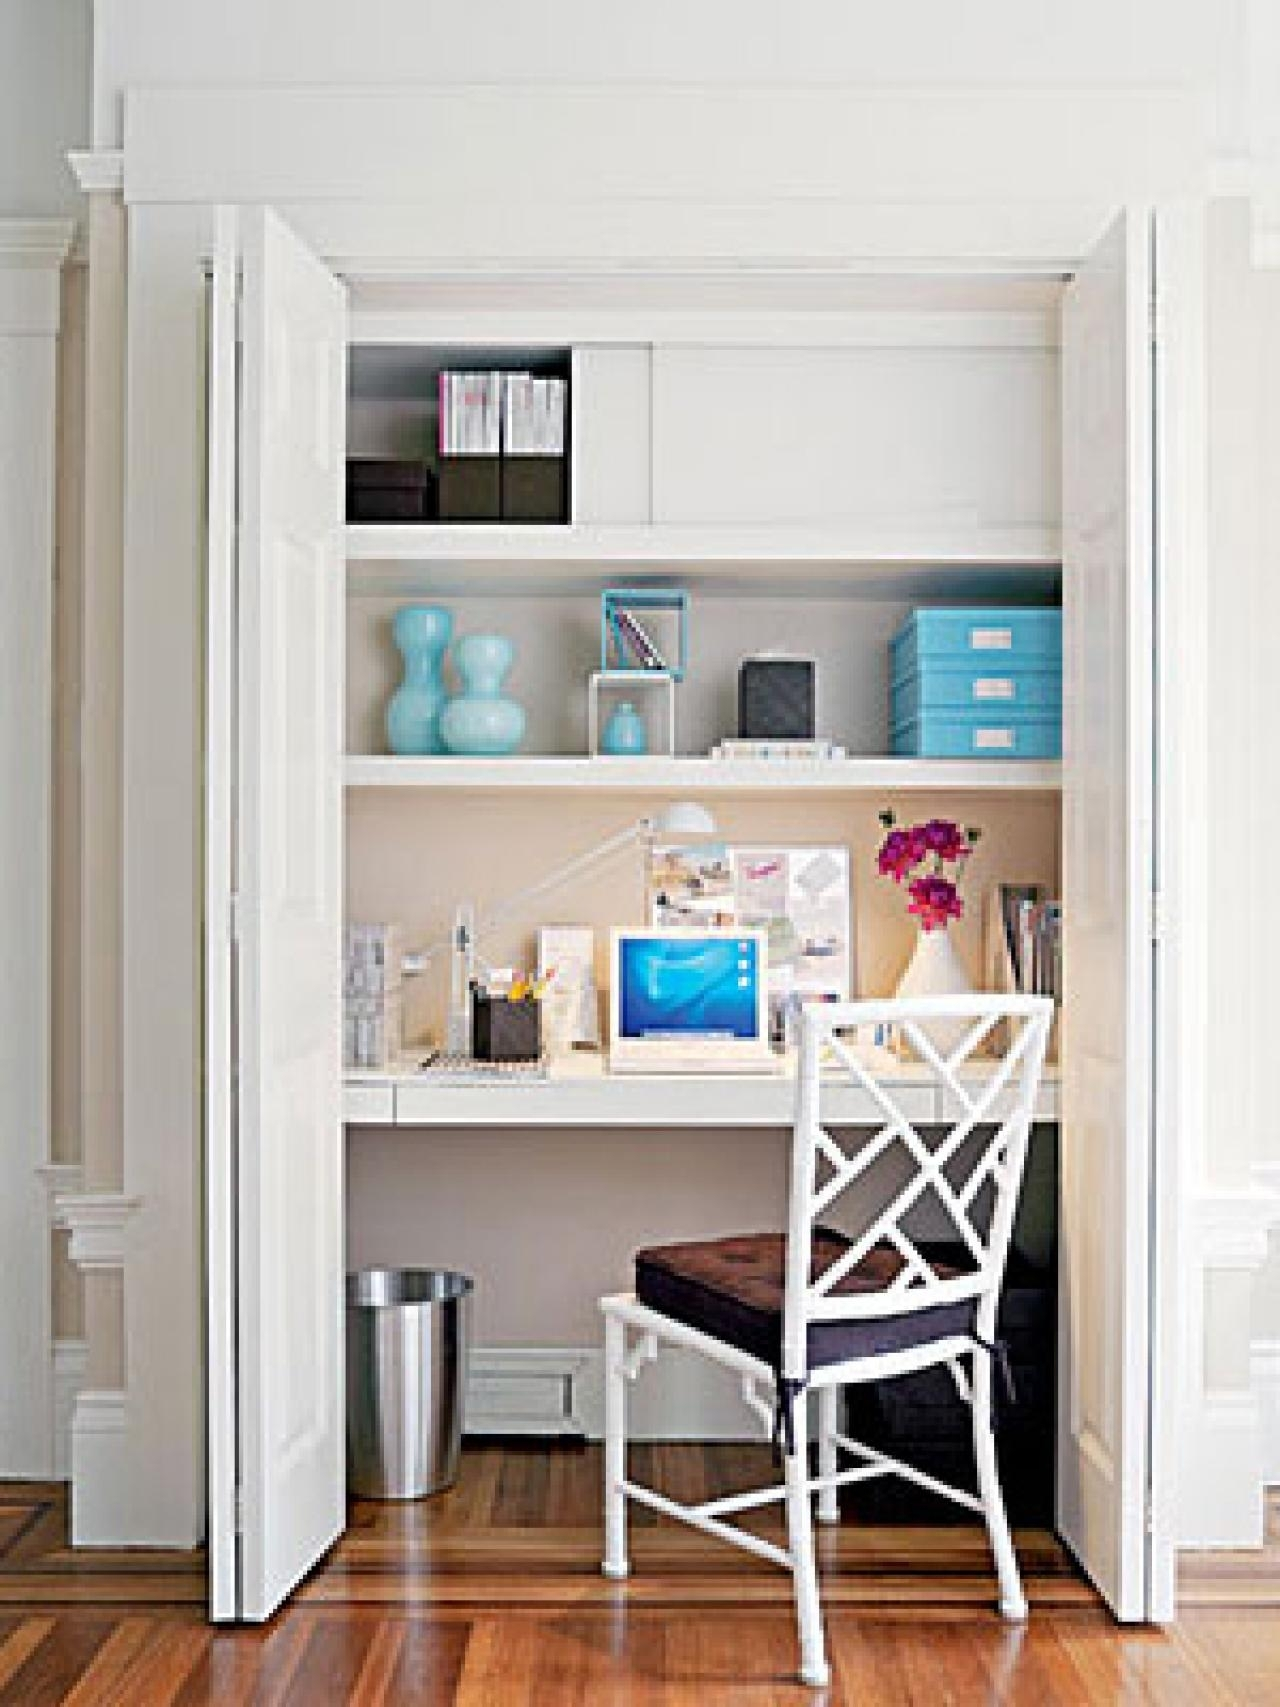 small space home office ideas | hgtv's decorating & design blog | hgtv